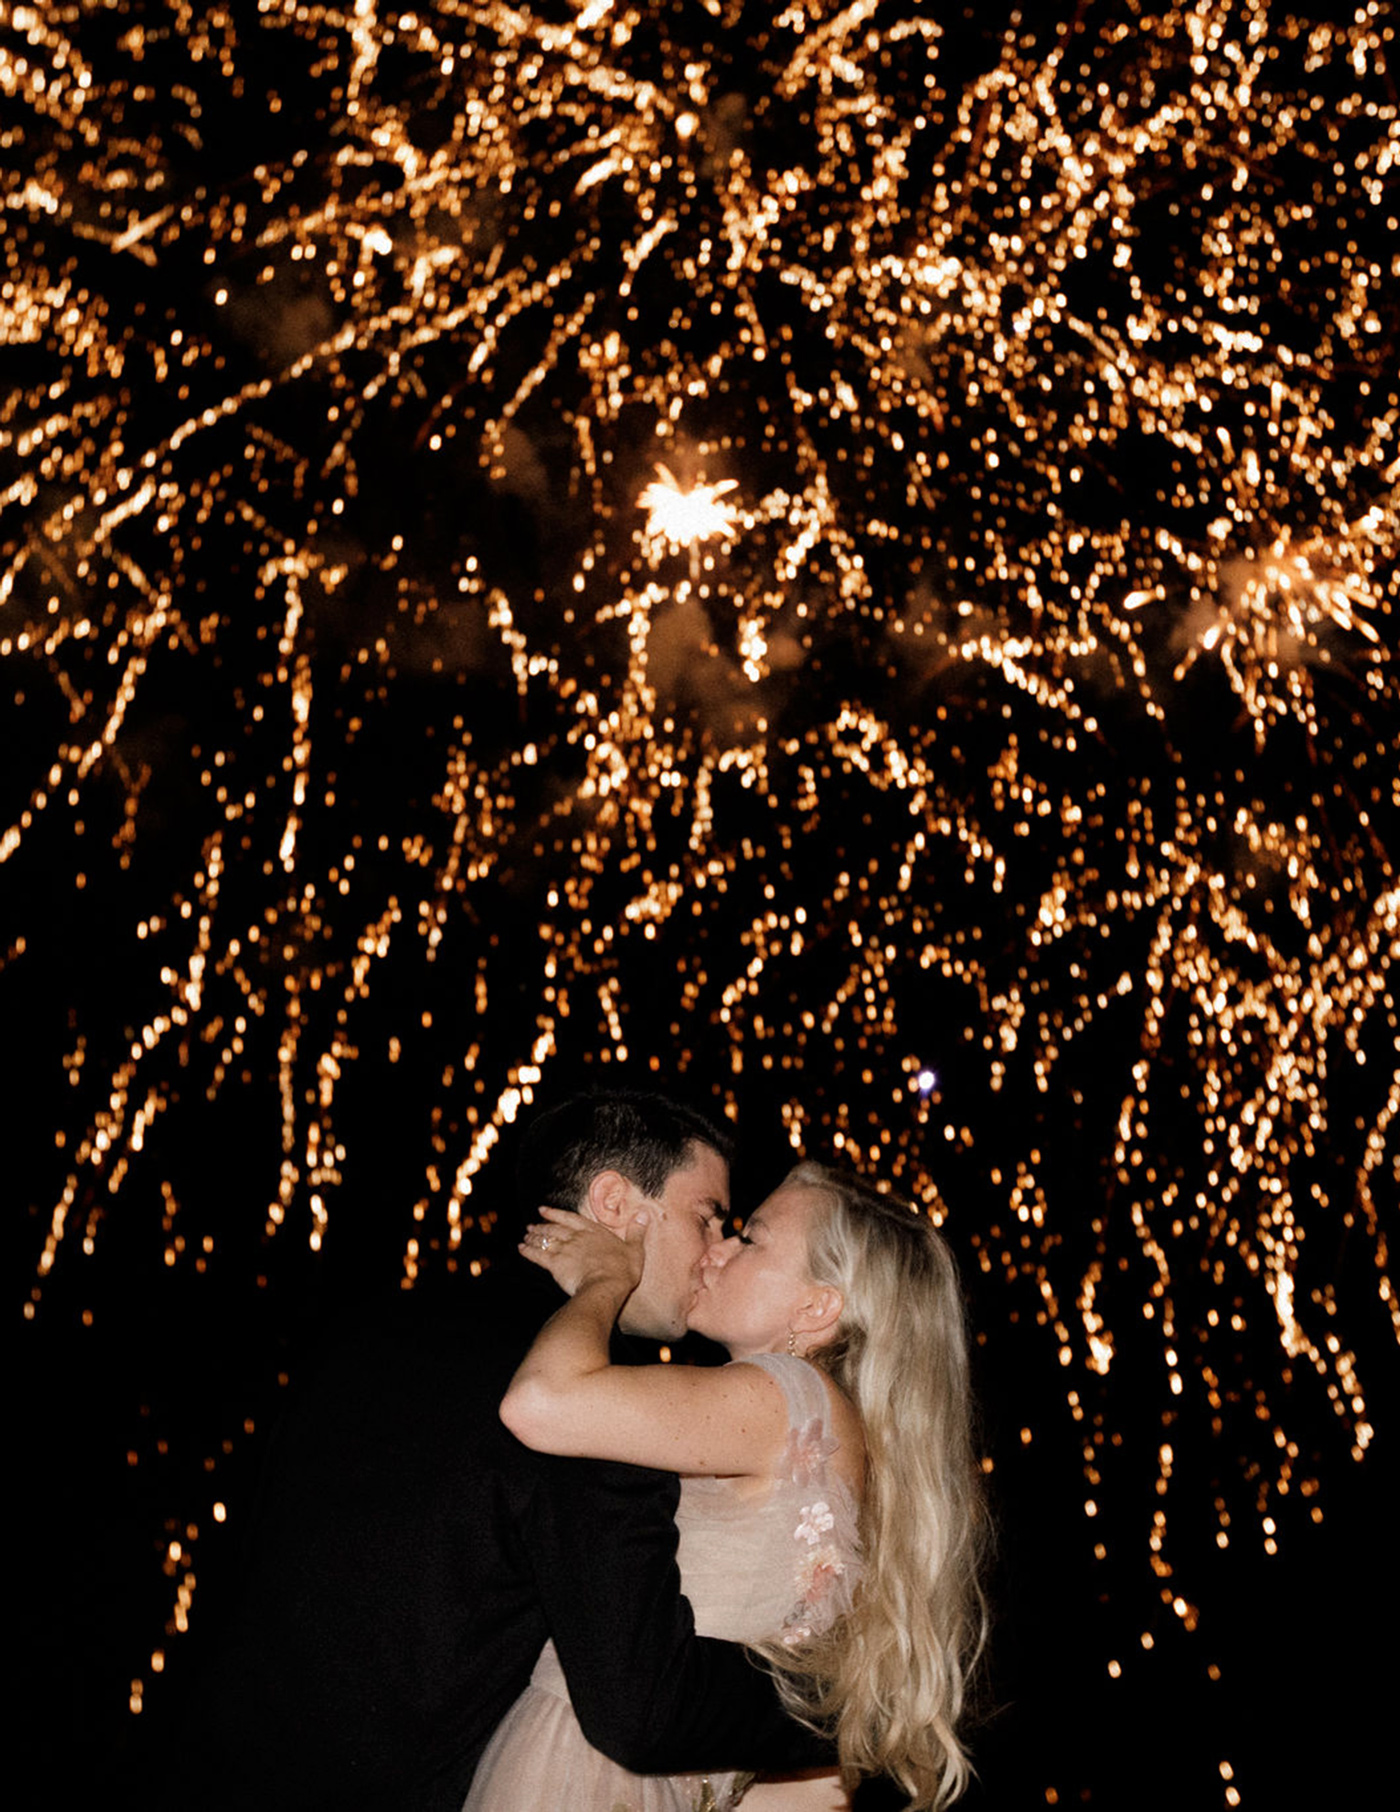 night shot wedding couple kissing under fireworks